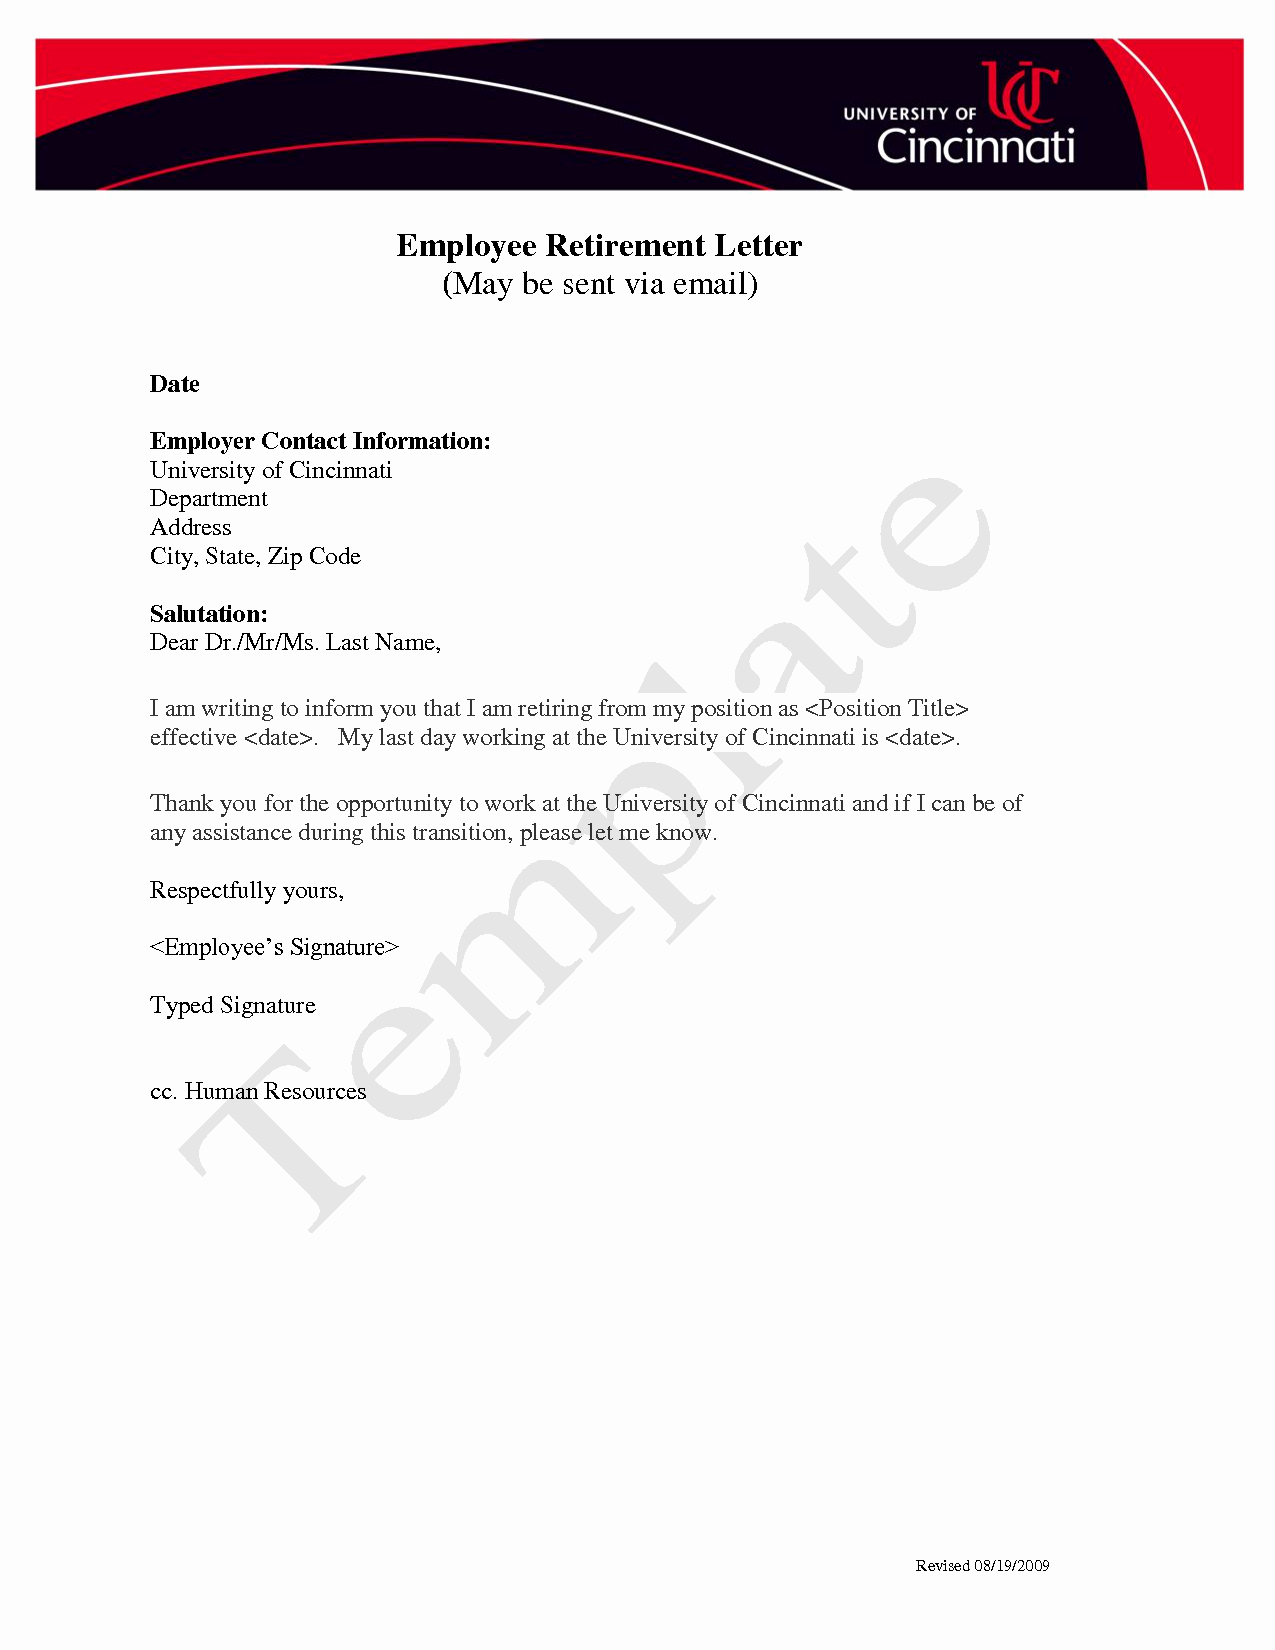 Retirement Letter to Employer Inspirational Write My Essay Line for Cheap Waiter Essay